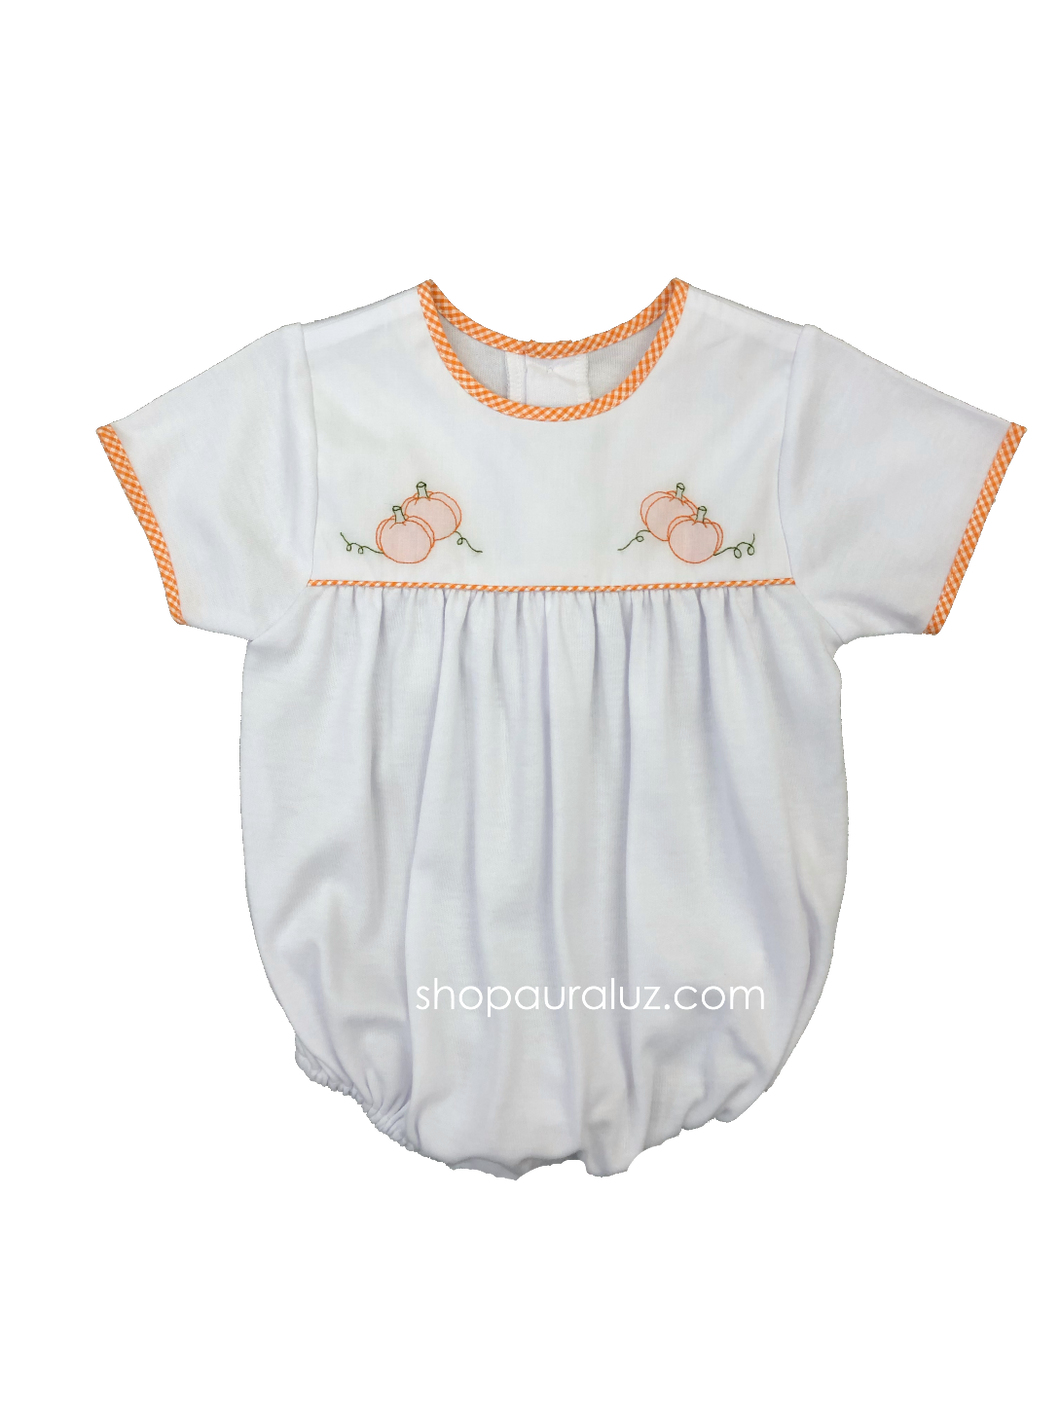 Auraluz Knit Bubble..White with orange check trim and embroidered pumpkins. STORE EXCLUSIVE!